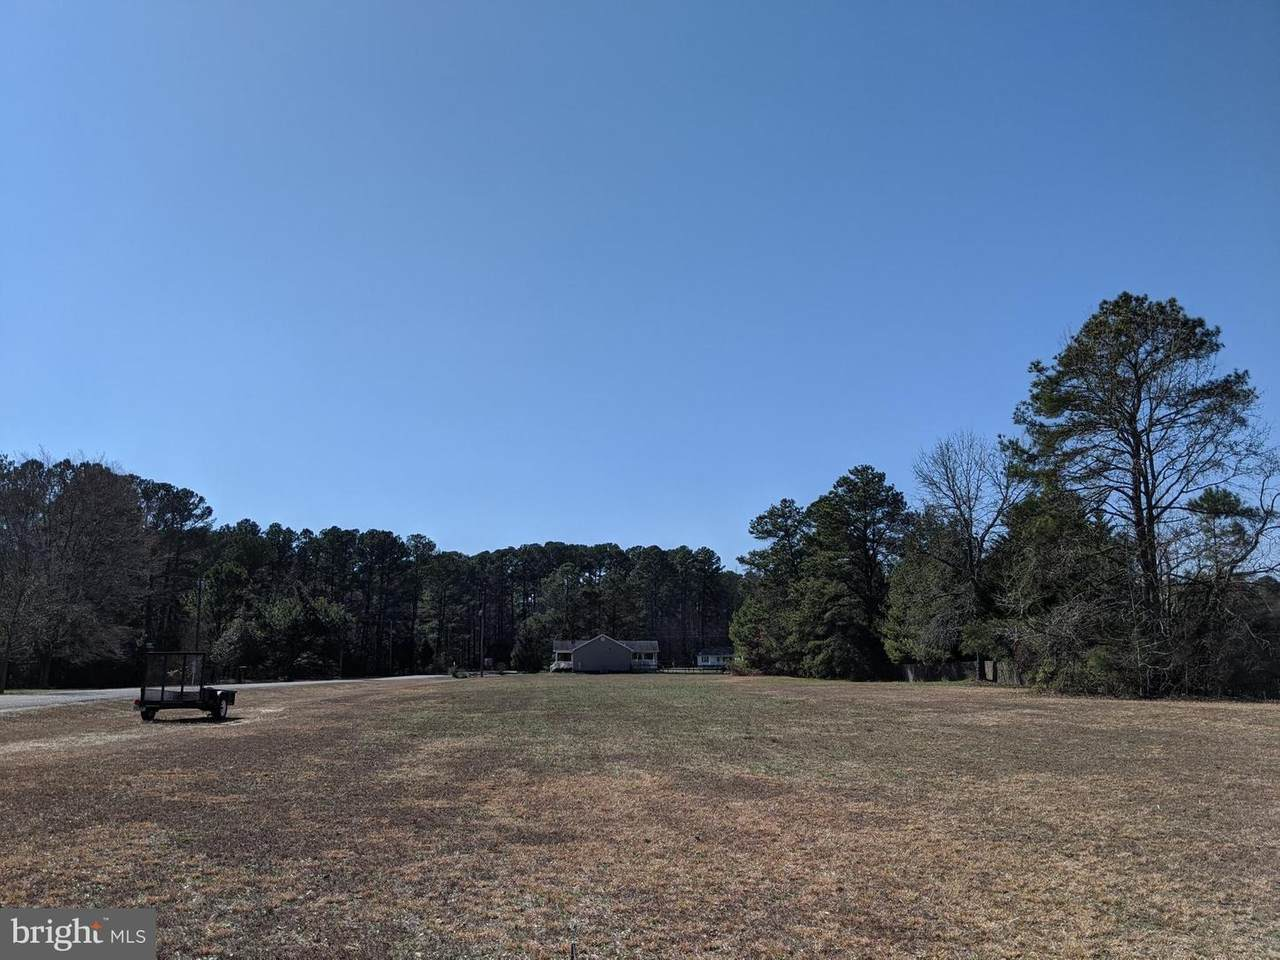 LOT 158 Parrish Loop - Photo 1